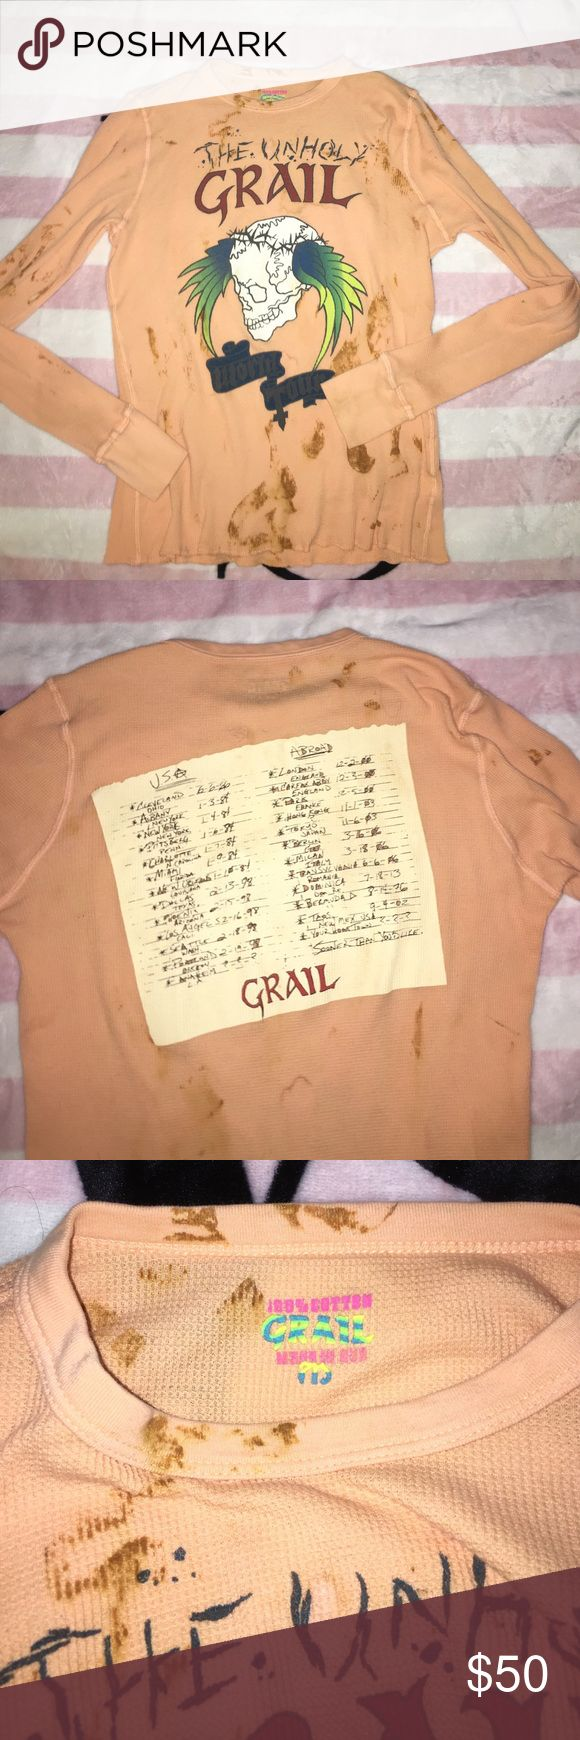 NWOT Grail Concert Tour Thermal Unholy Grail Thermal in a light orange/peach color. Very long sleeves with thumb holes to wear over your hands. Very long in length going way past pant line. A skull with wings on front and concert tour list on the back. No rips or stains. No fading or signs of ware. Size Medium but can fit a Small with an oversized look or Large for a fitted look Grail Tops Tees - Long Sleeve